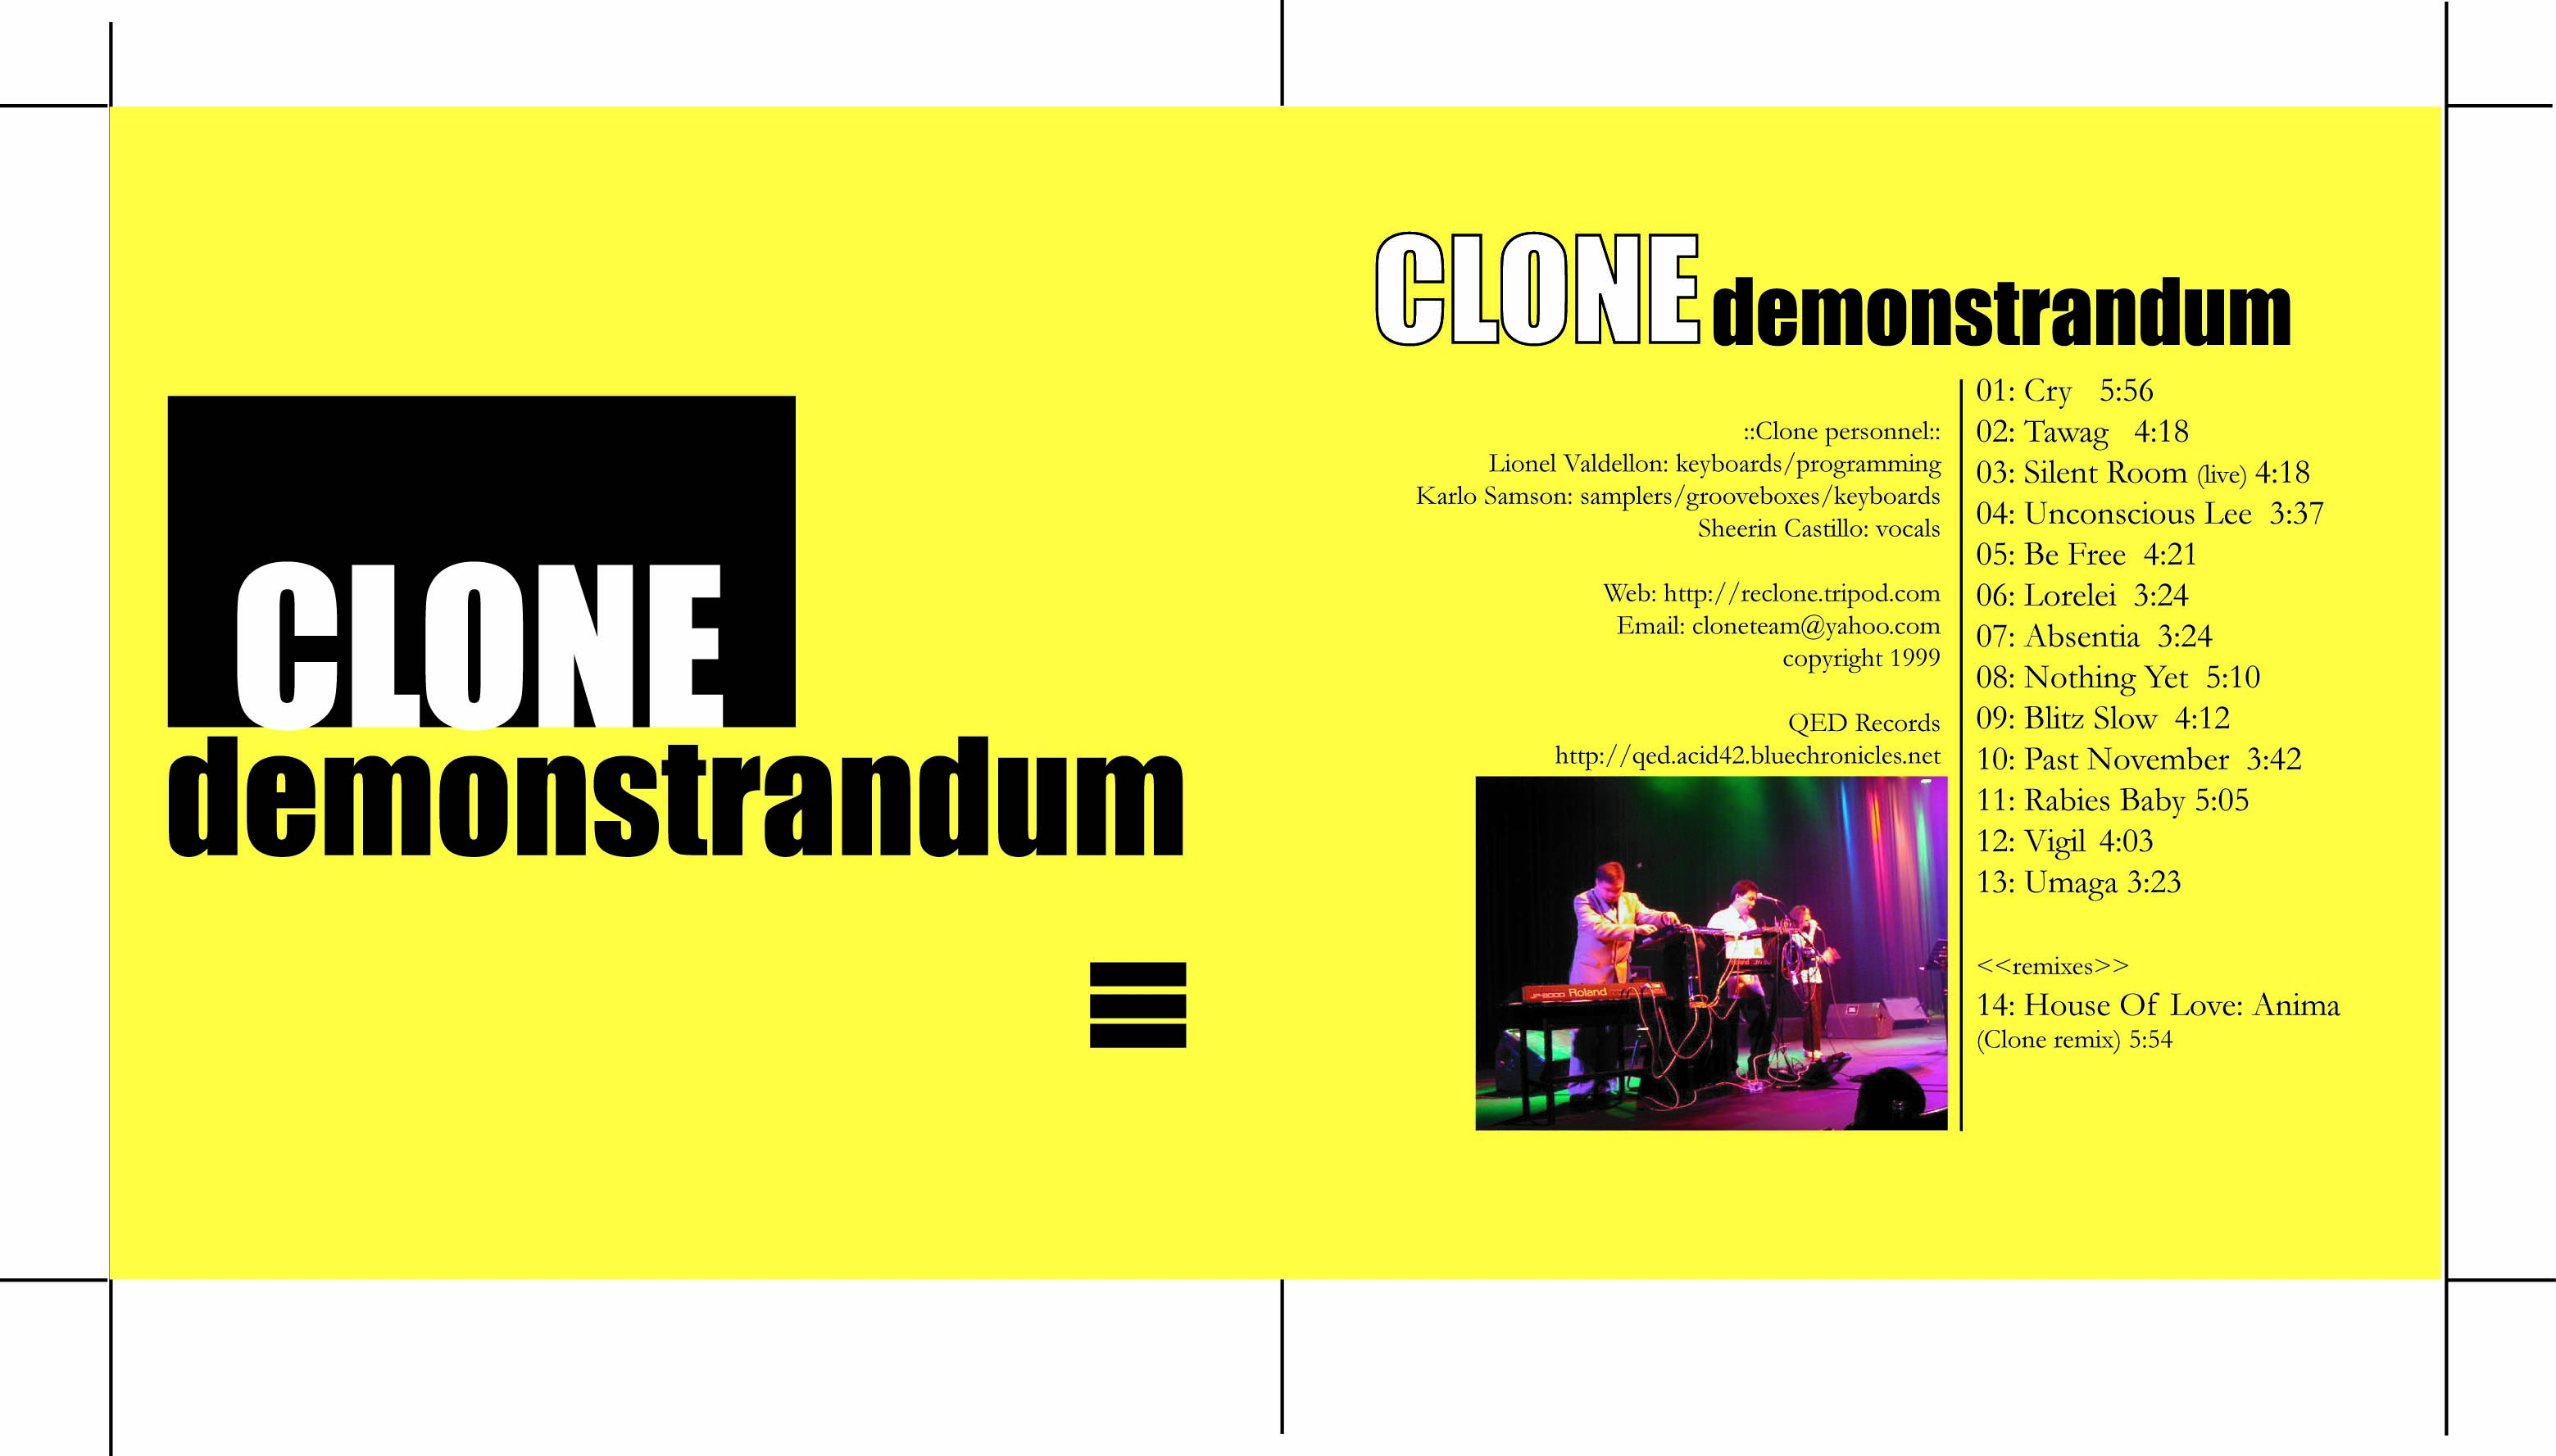 (qd-4200) Clone: Demonstrandum